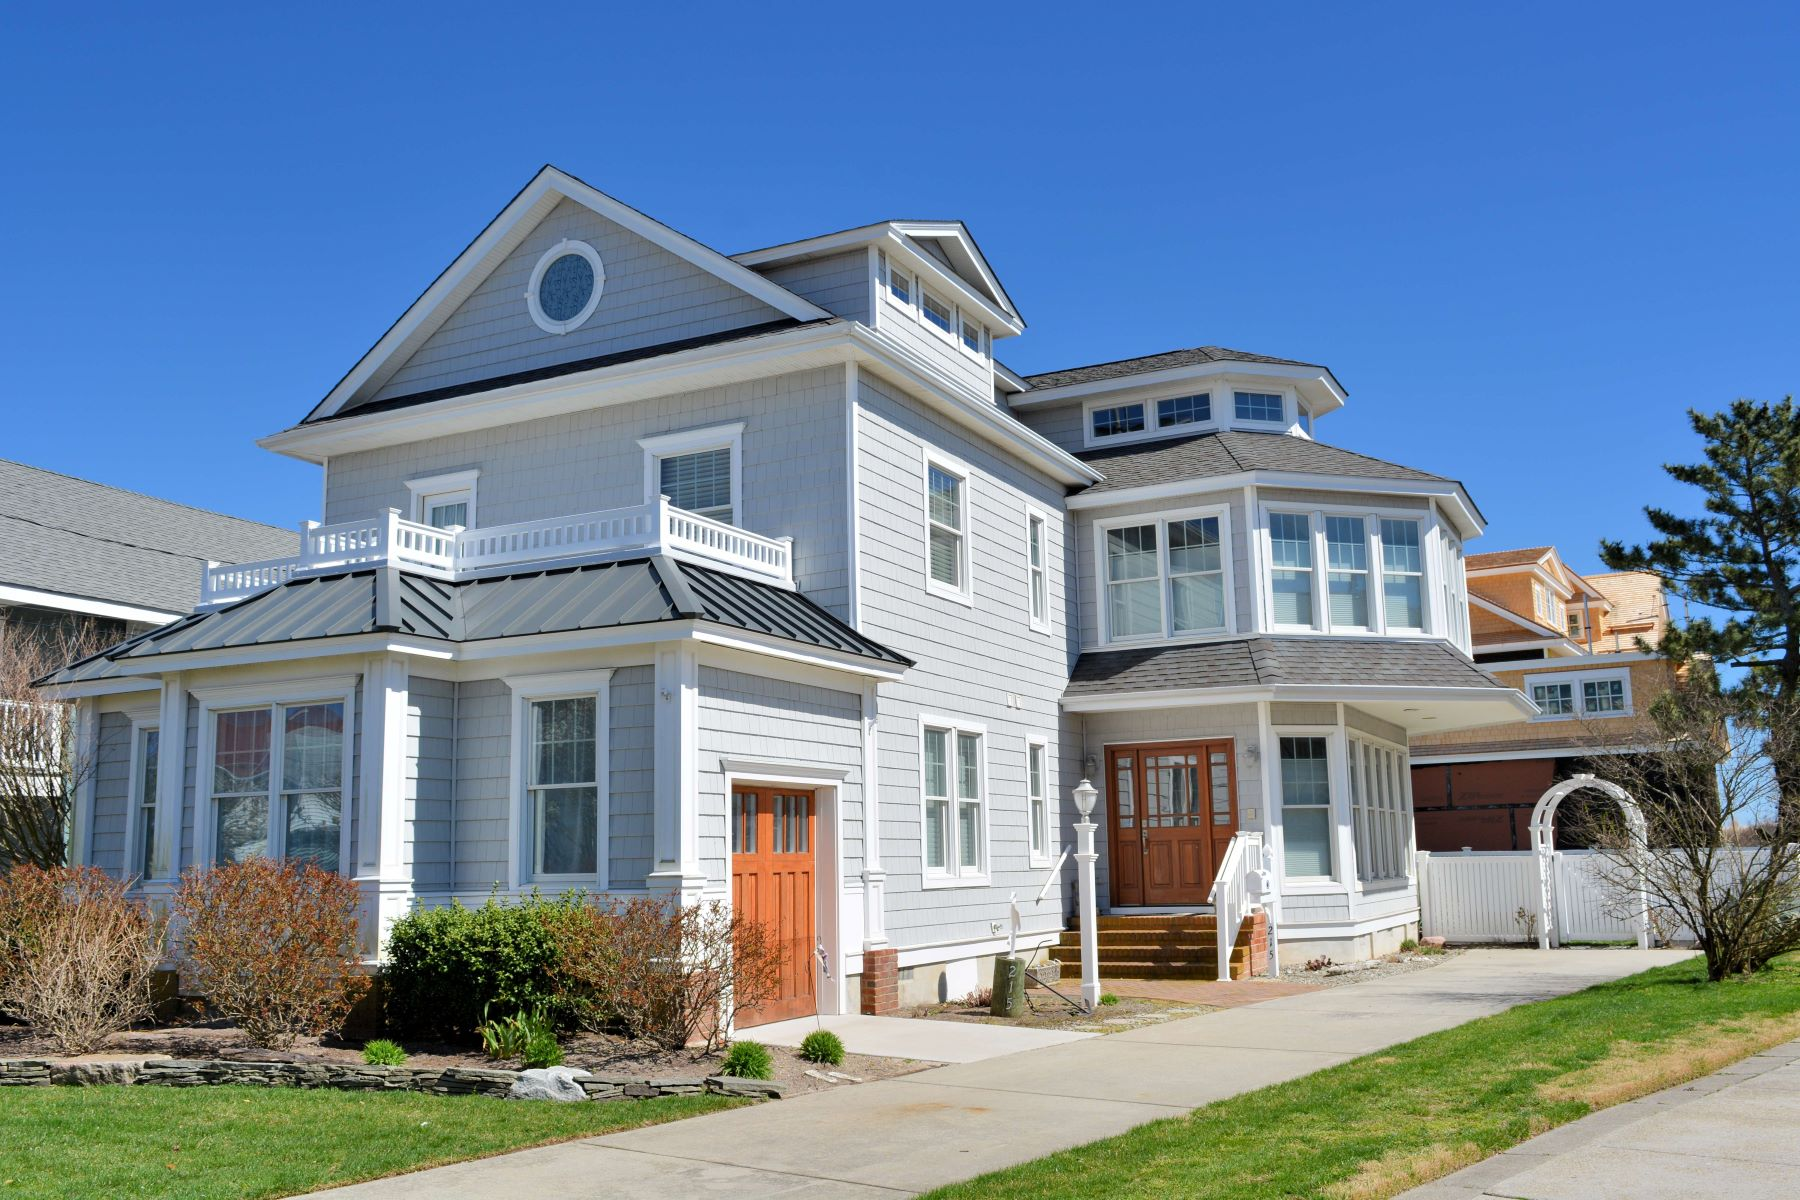 Single Family Home for Sale at Sophisticated Single Family Home 215 Ocean Road Ocean City, New Jersey 08226 United States